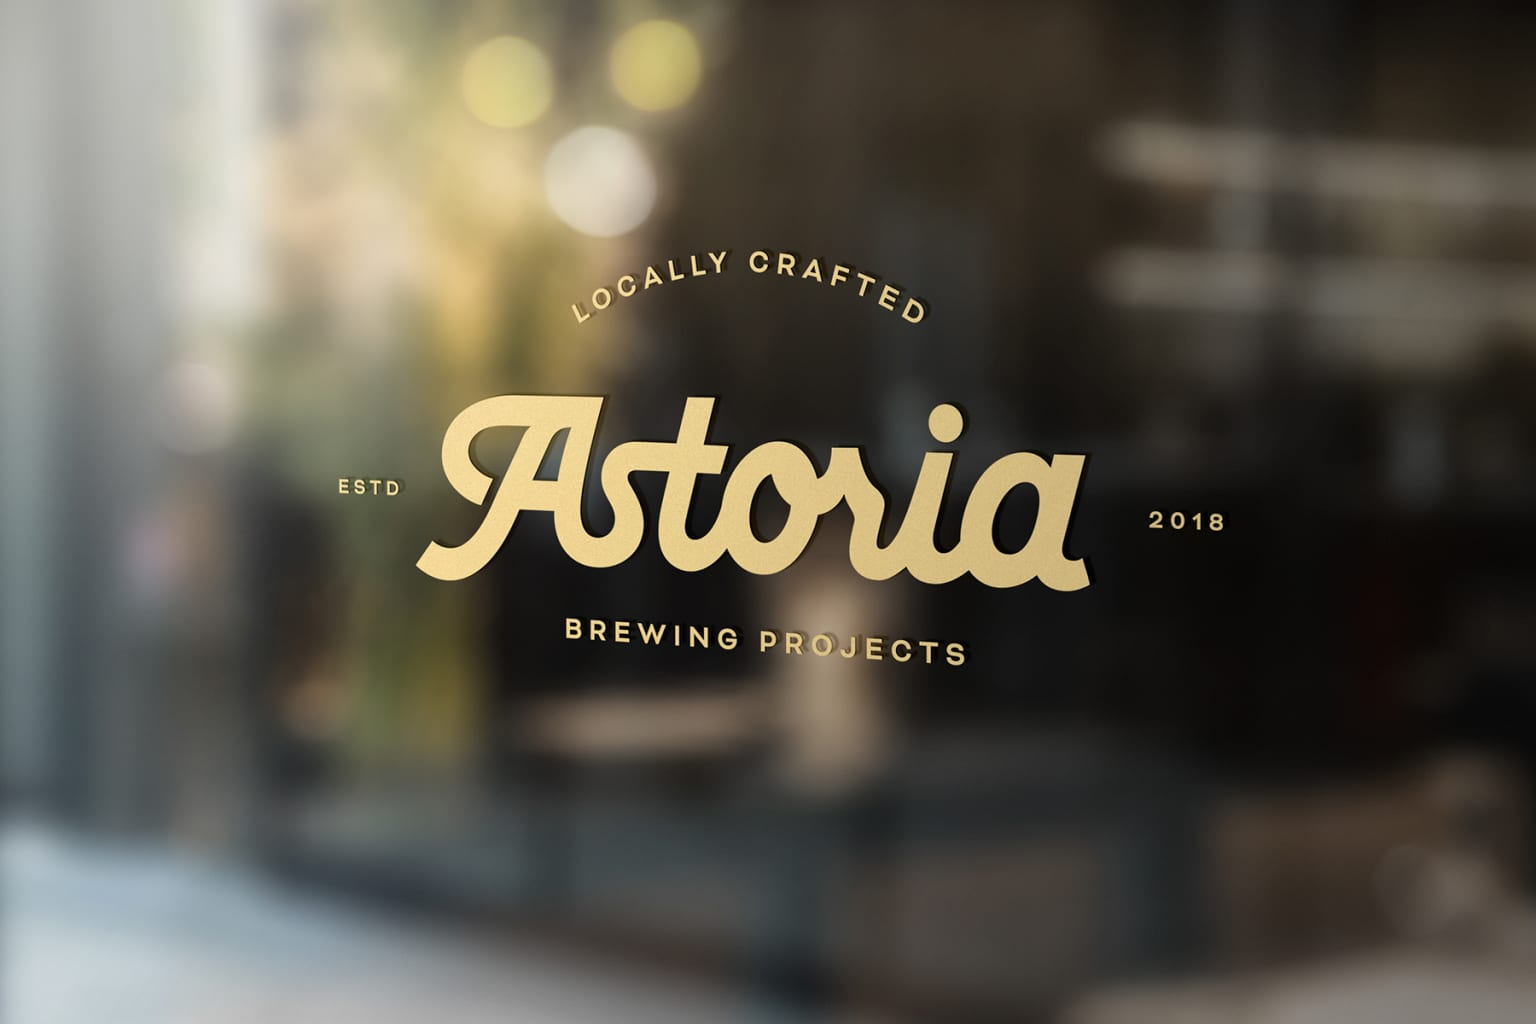 Astoria Brewing Projects